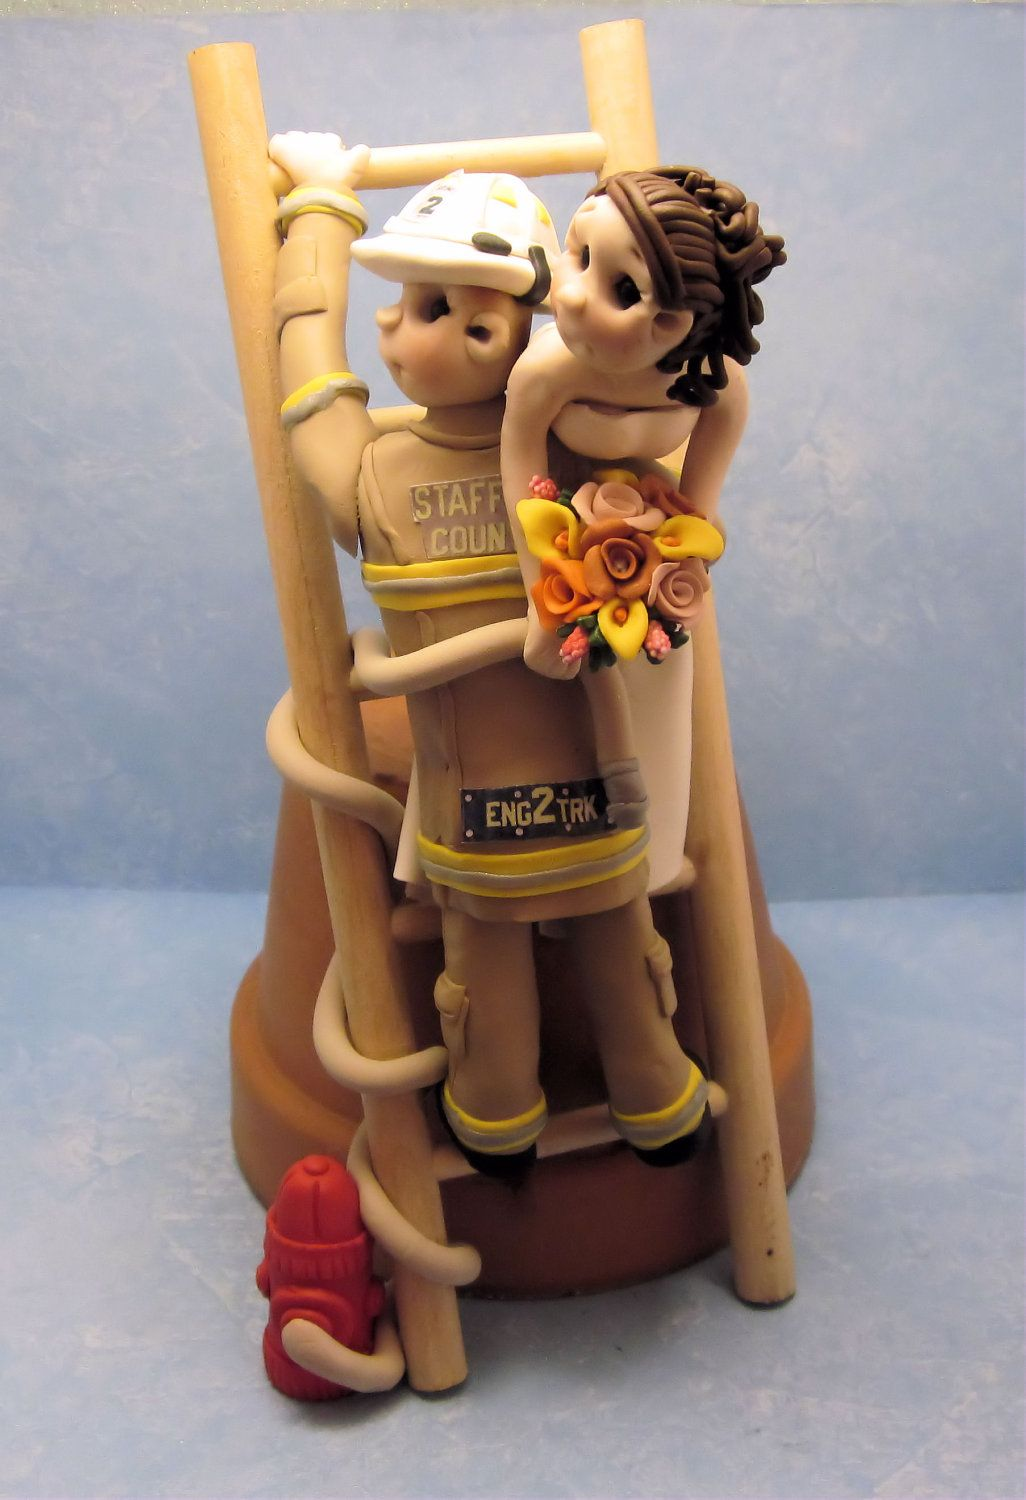 fireman cake toppers for wedding cakes fighter cakes firefighter cake topper 14270